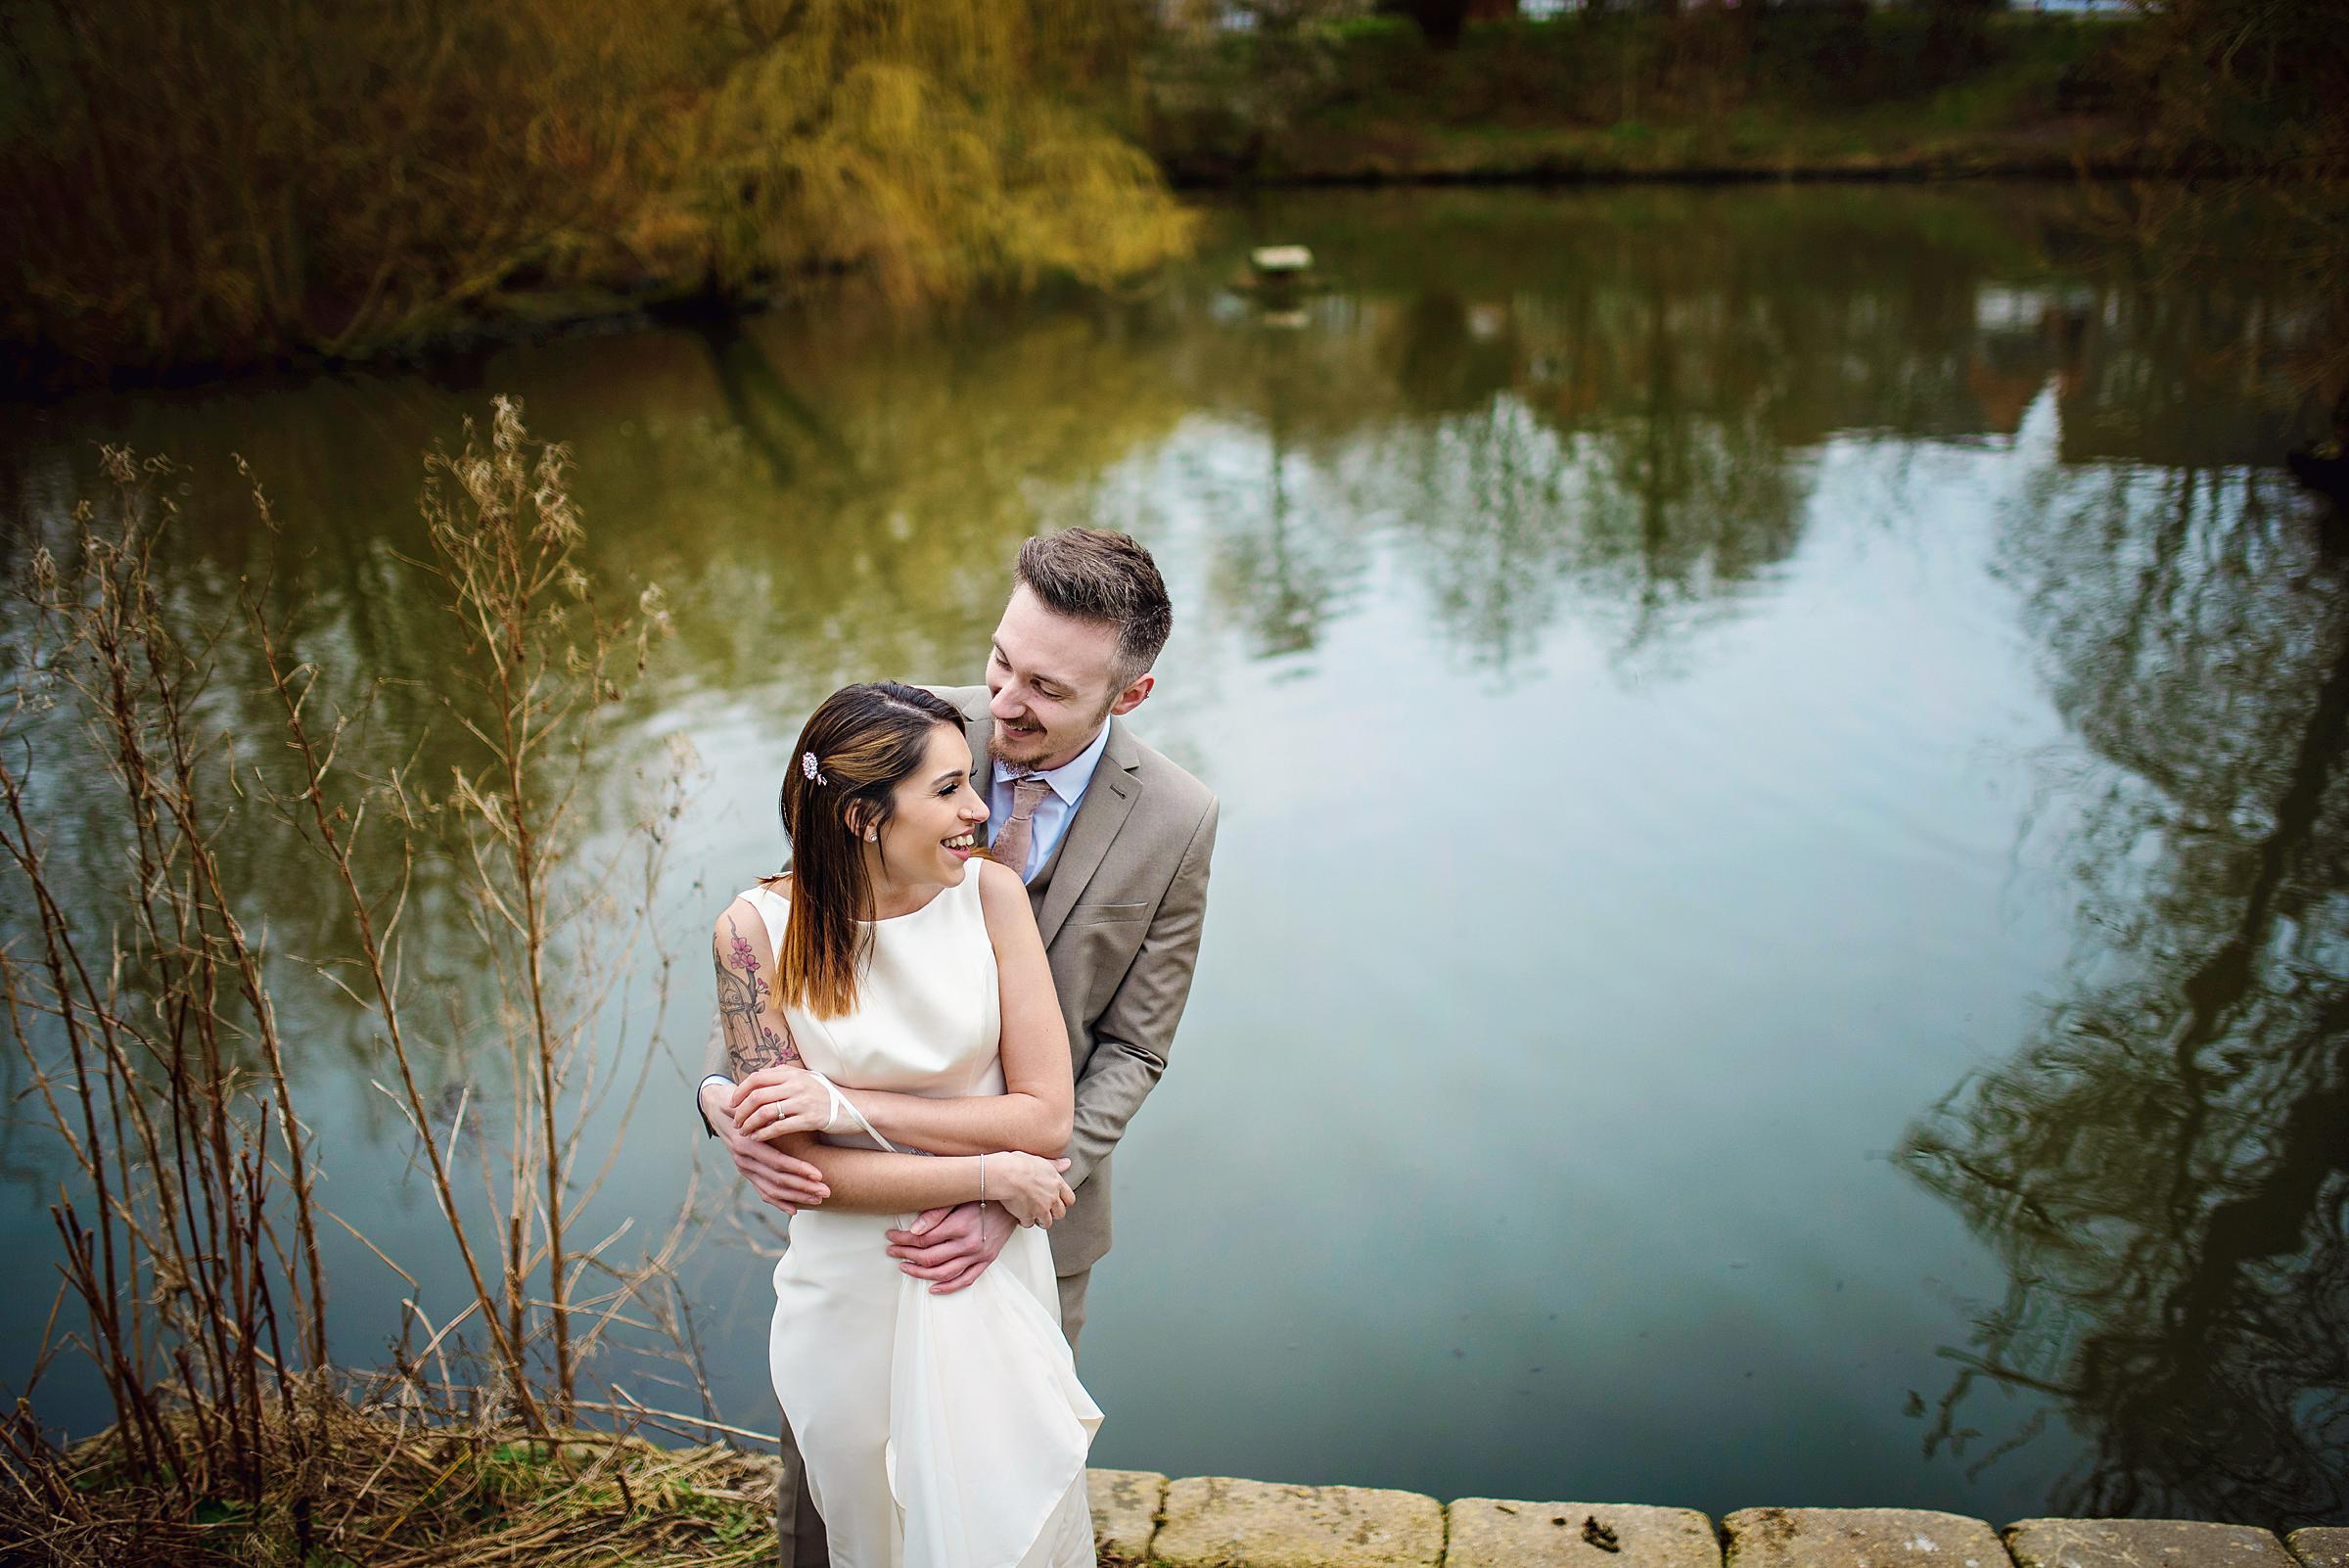 First Look Wedding Photography - Tunbridge Wells Photographer - Photography by Vicki